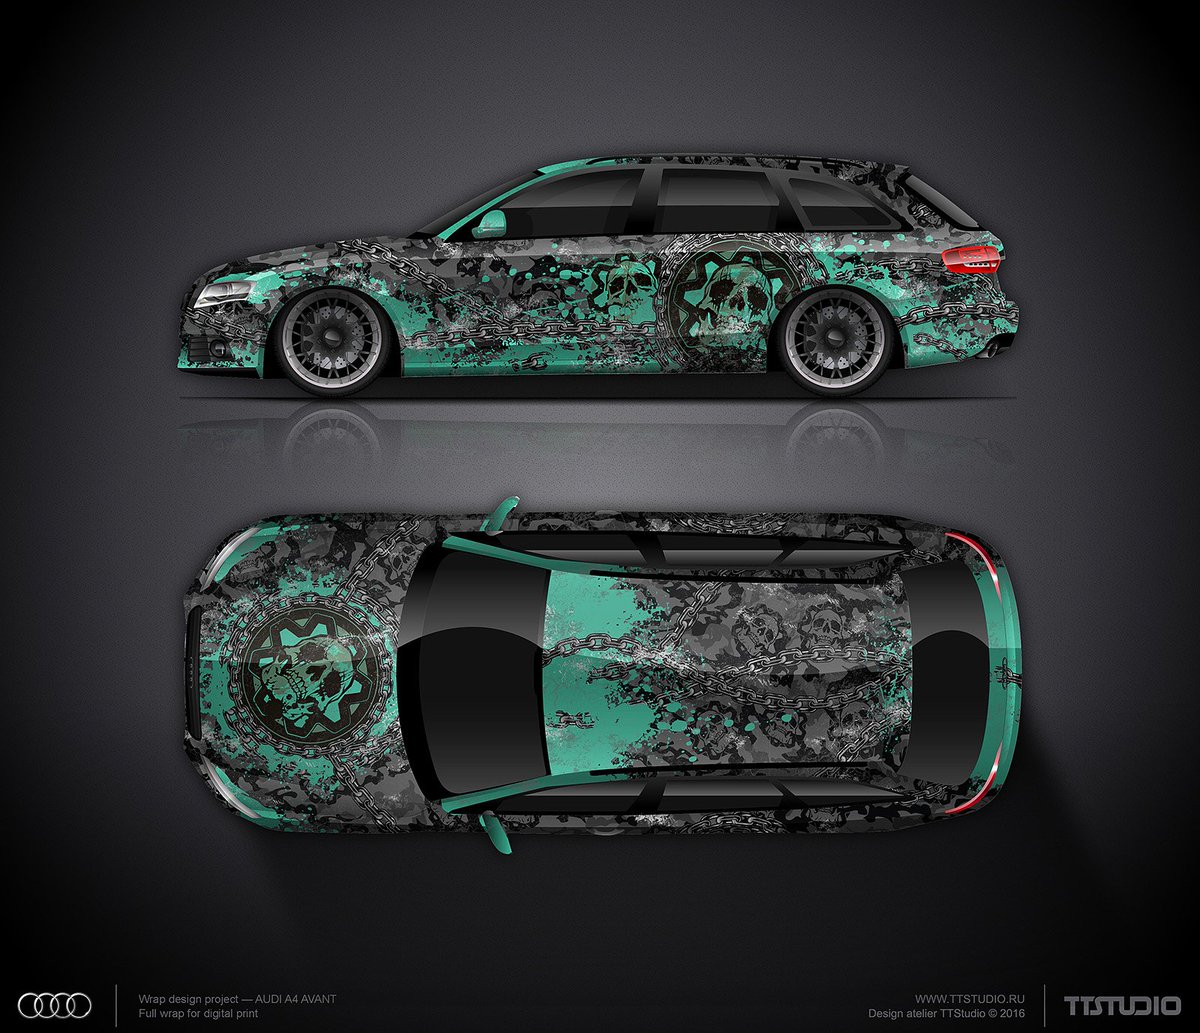 Alexander On Twitter Design Concept Skulls Camo For Audi Rs6